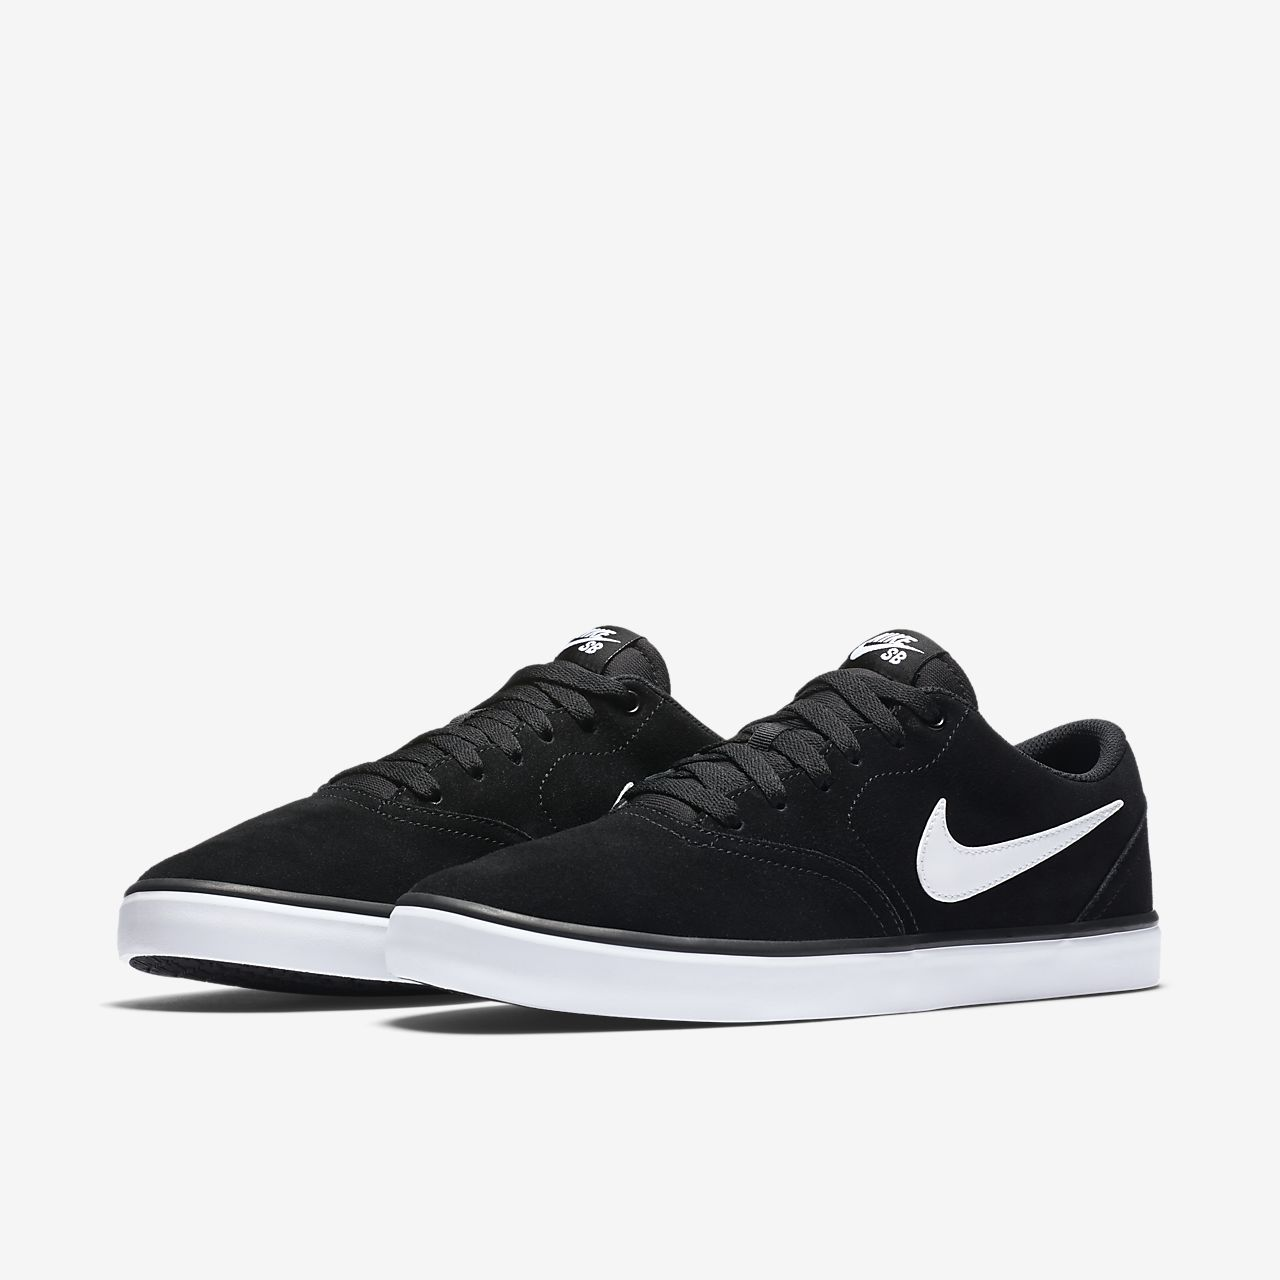 ... Nike SB Check Solarsoft Men's Skateboarding Shoe